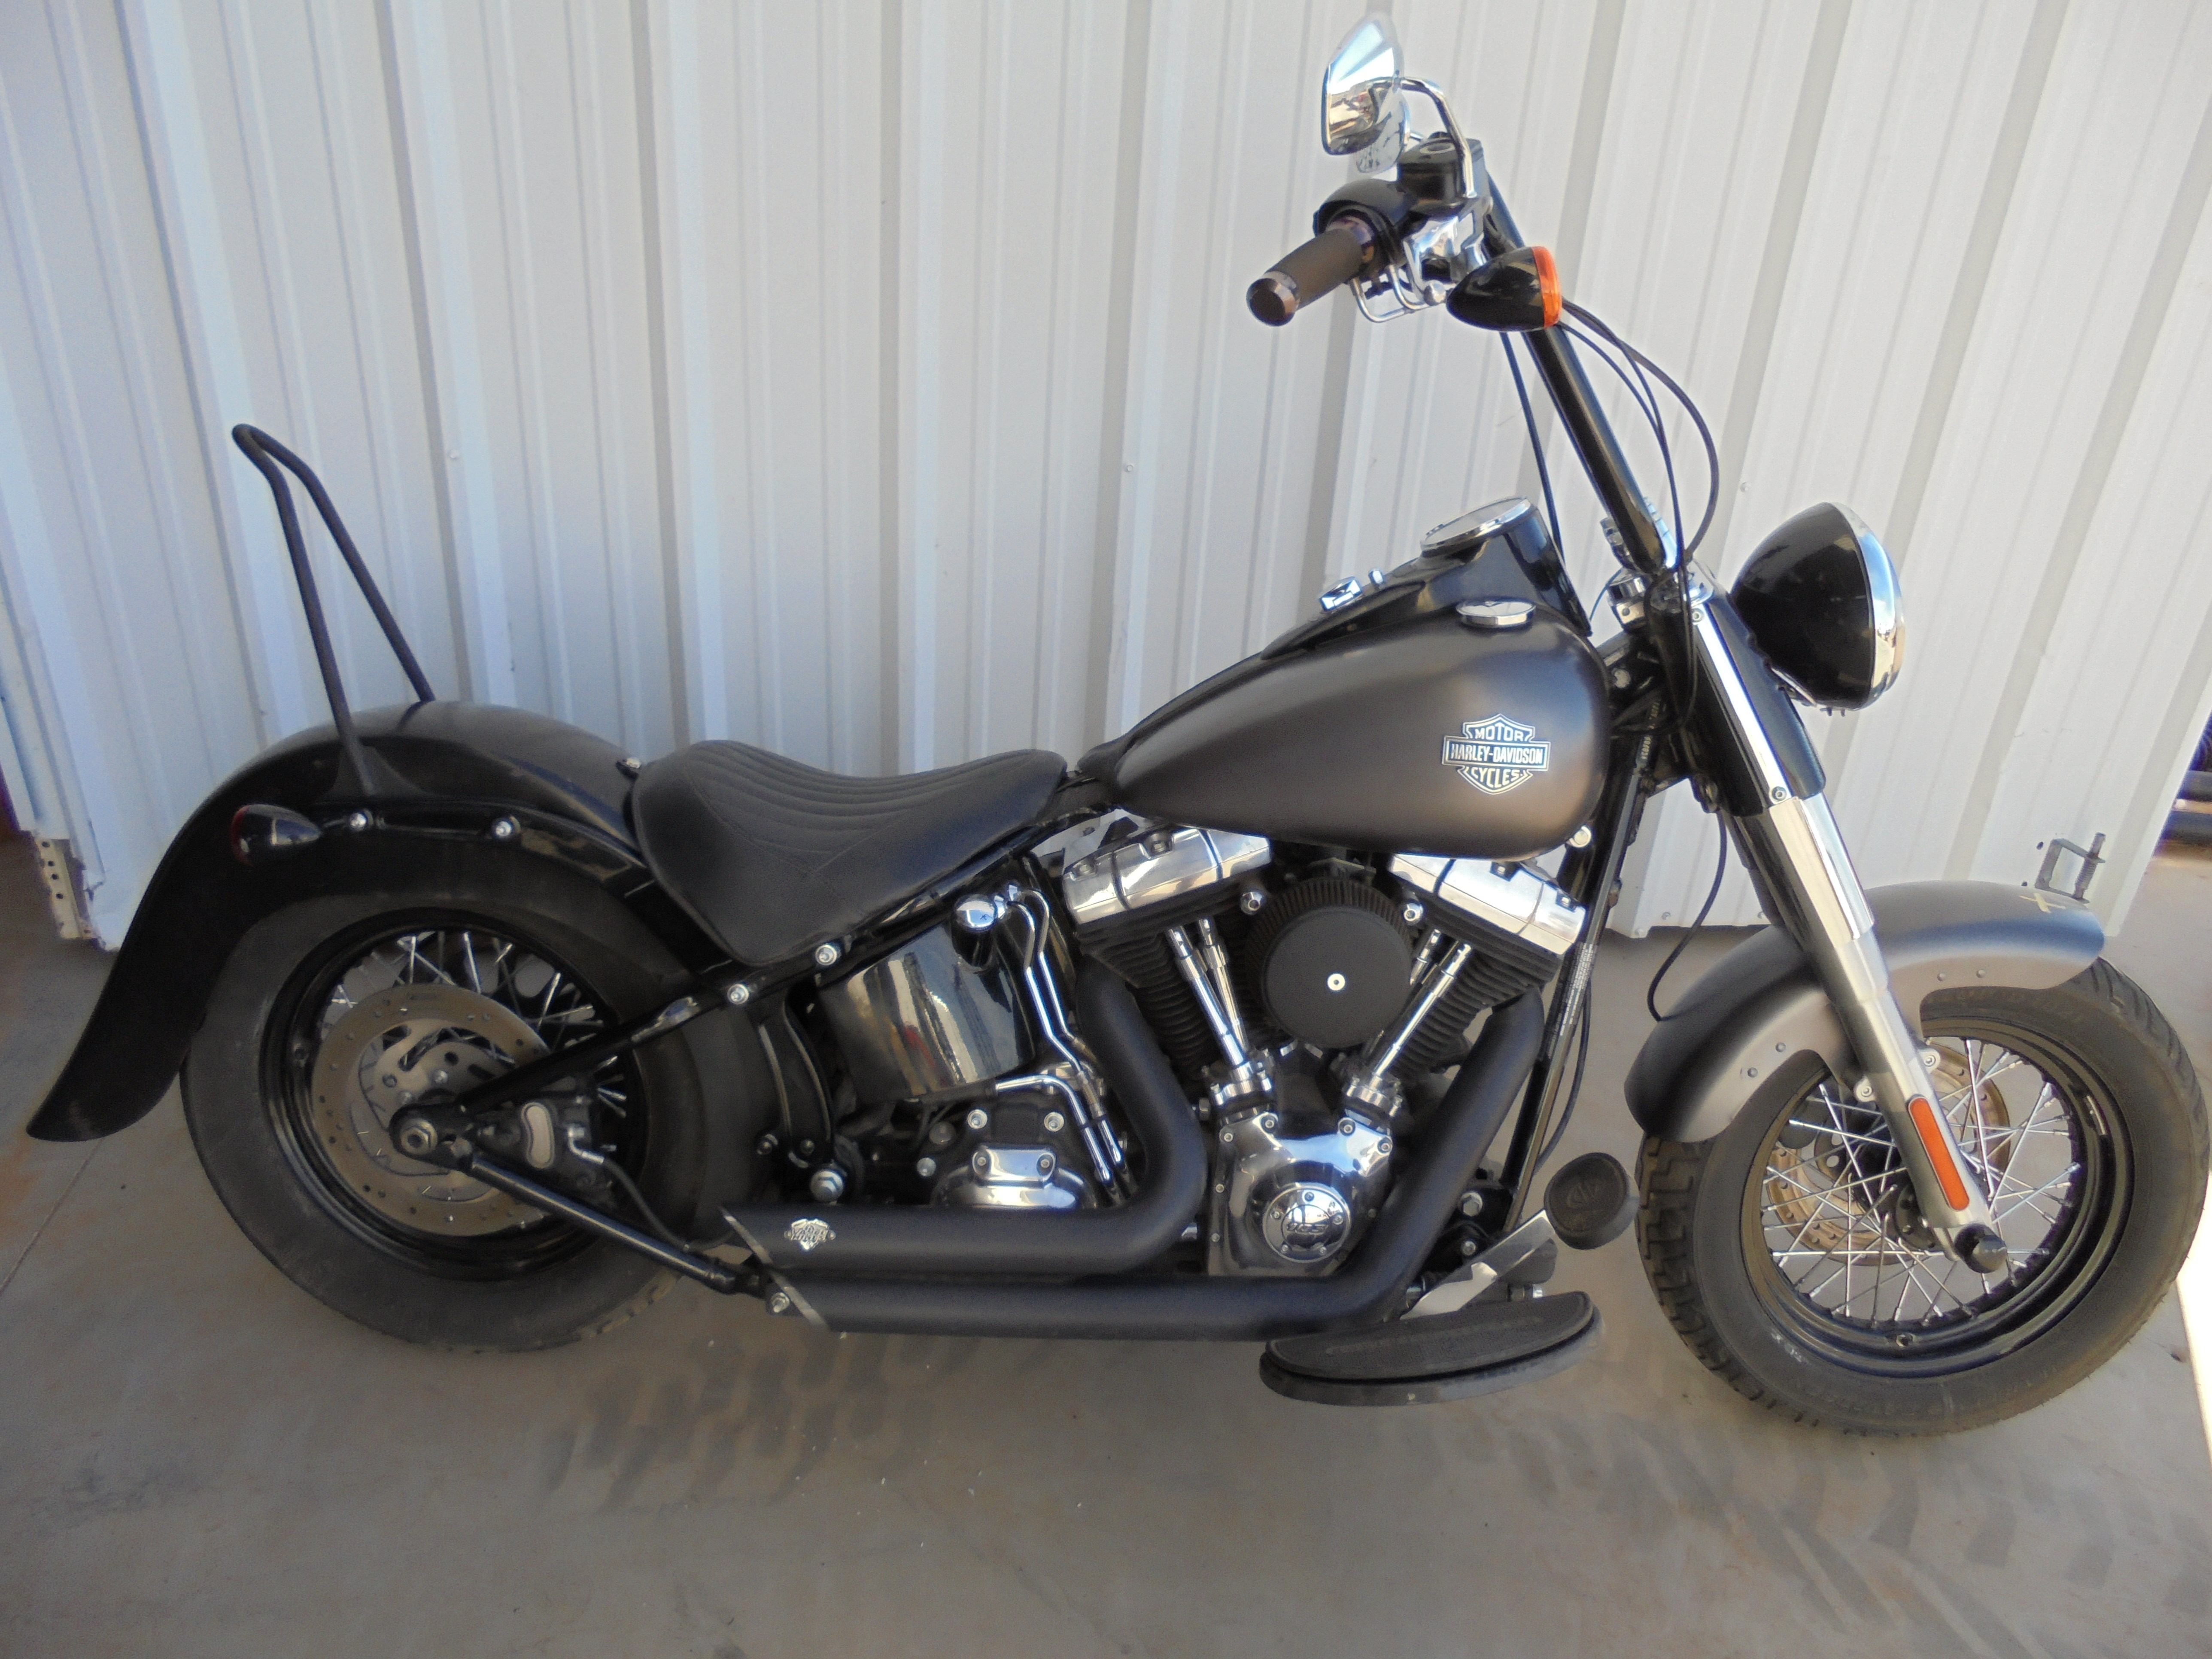 Cvo Motorcycles For Sale Texas >> Harley-Davidson® Softail Slim™ for Sale (760 Bikes, Page 1) | ChopperExchange